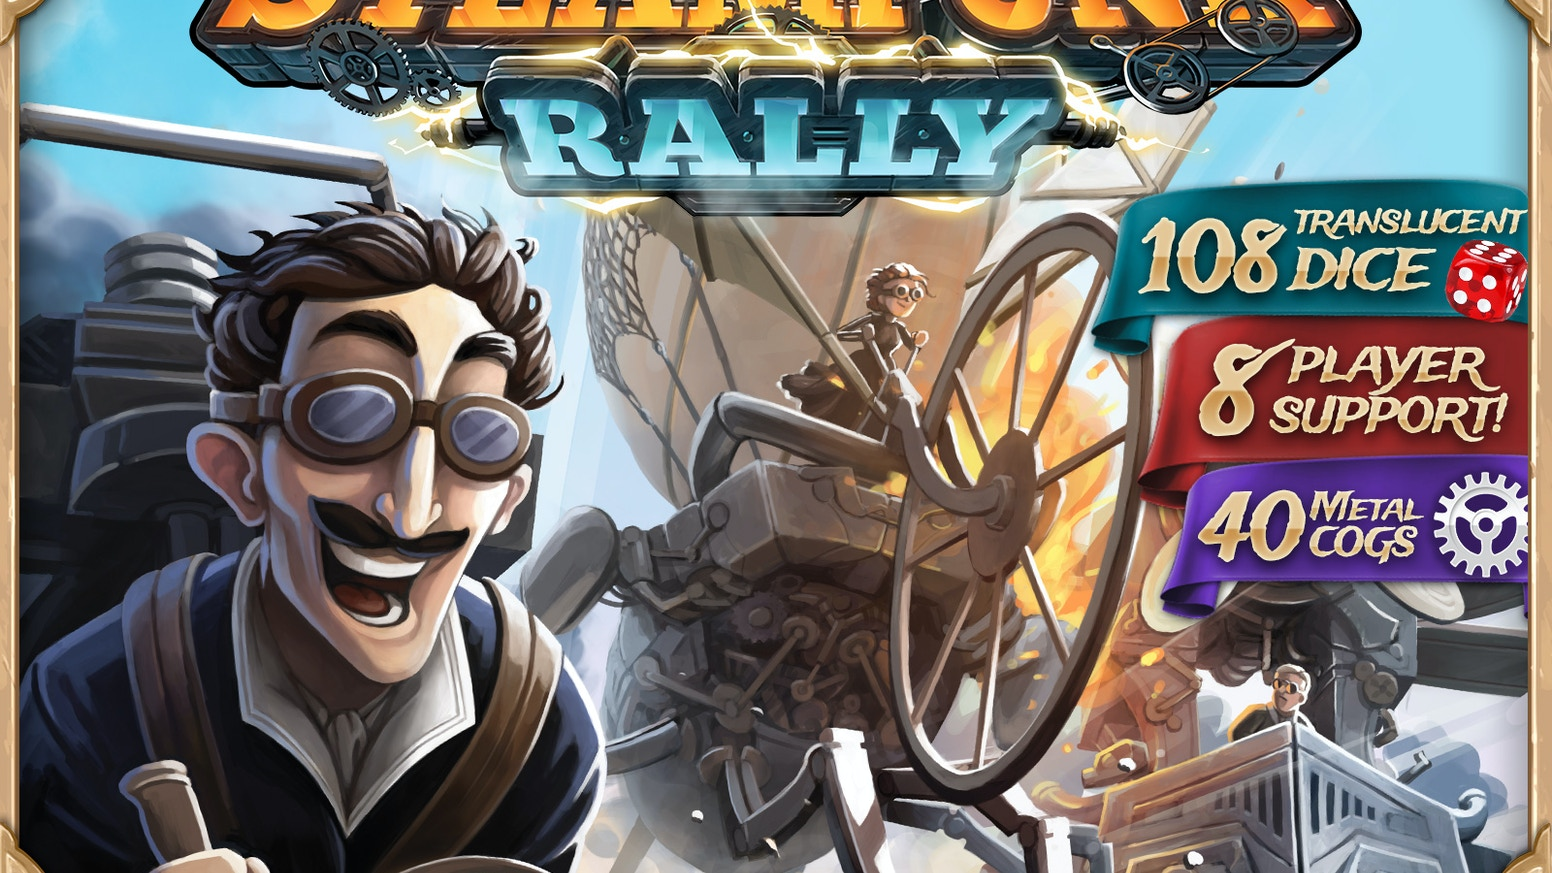 Finally! A true steampunk game featuring 108 dice, 16 famed inventors, and unique dice-placement & card-drafting mechanics.